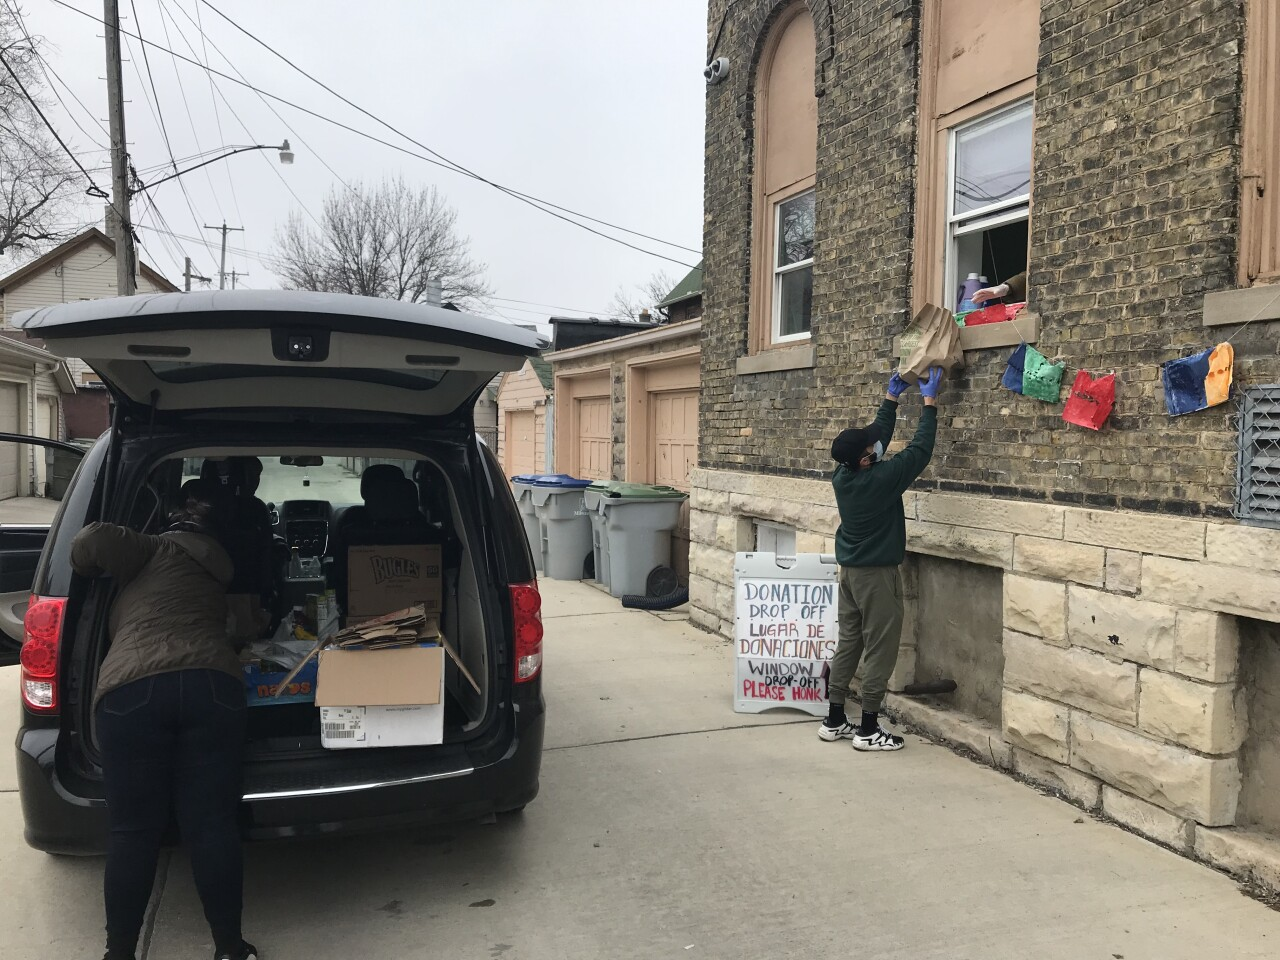 Members of Ayuda Mutua MKE help unload a car full of food donations and pass them through a window to be sorted and stored.